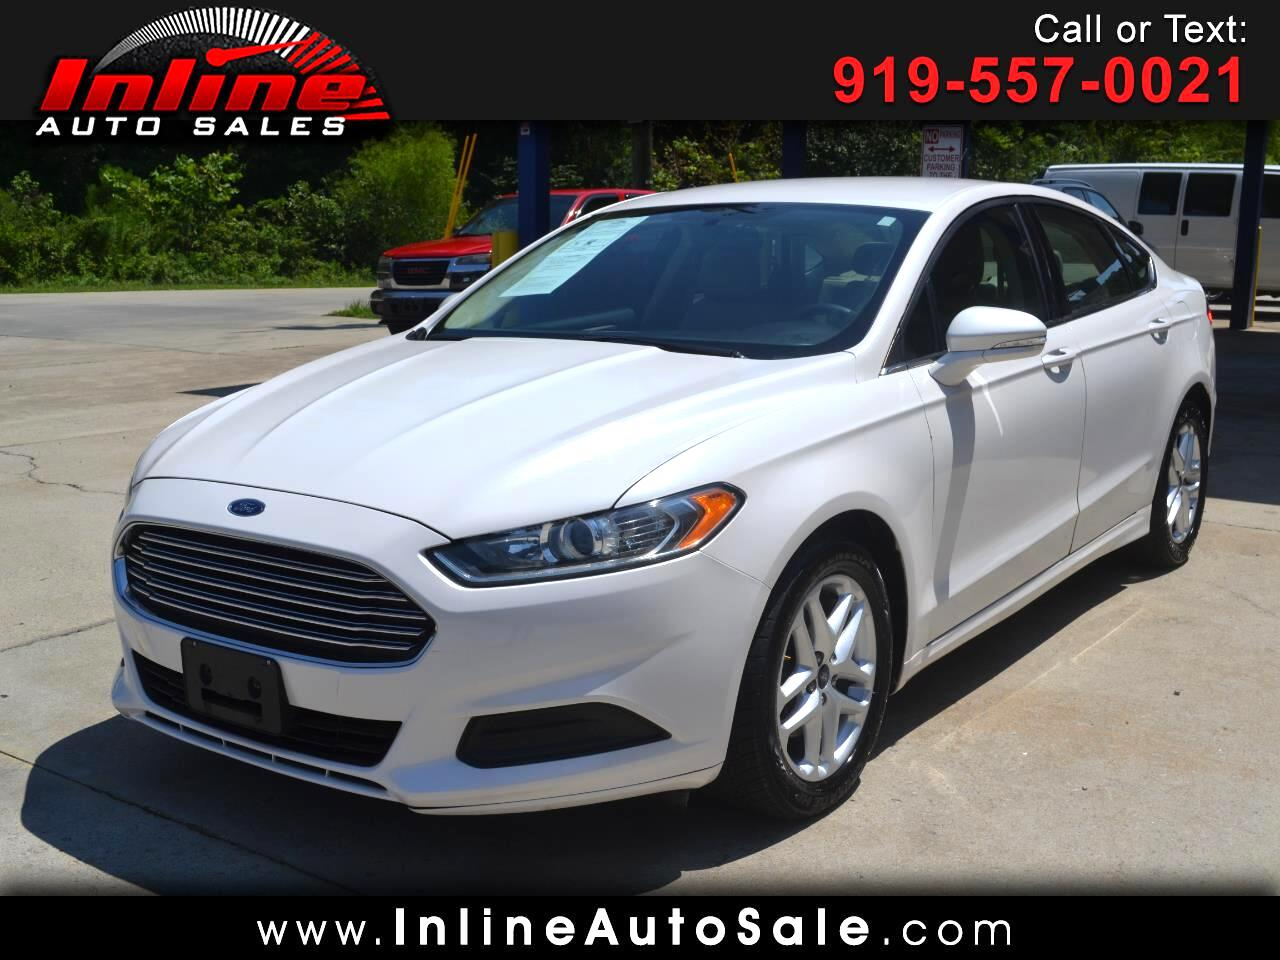 Ford Fusion 4dr Sdn SE FWD 2014